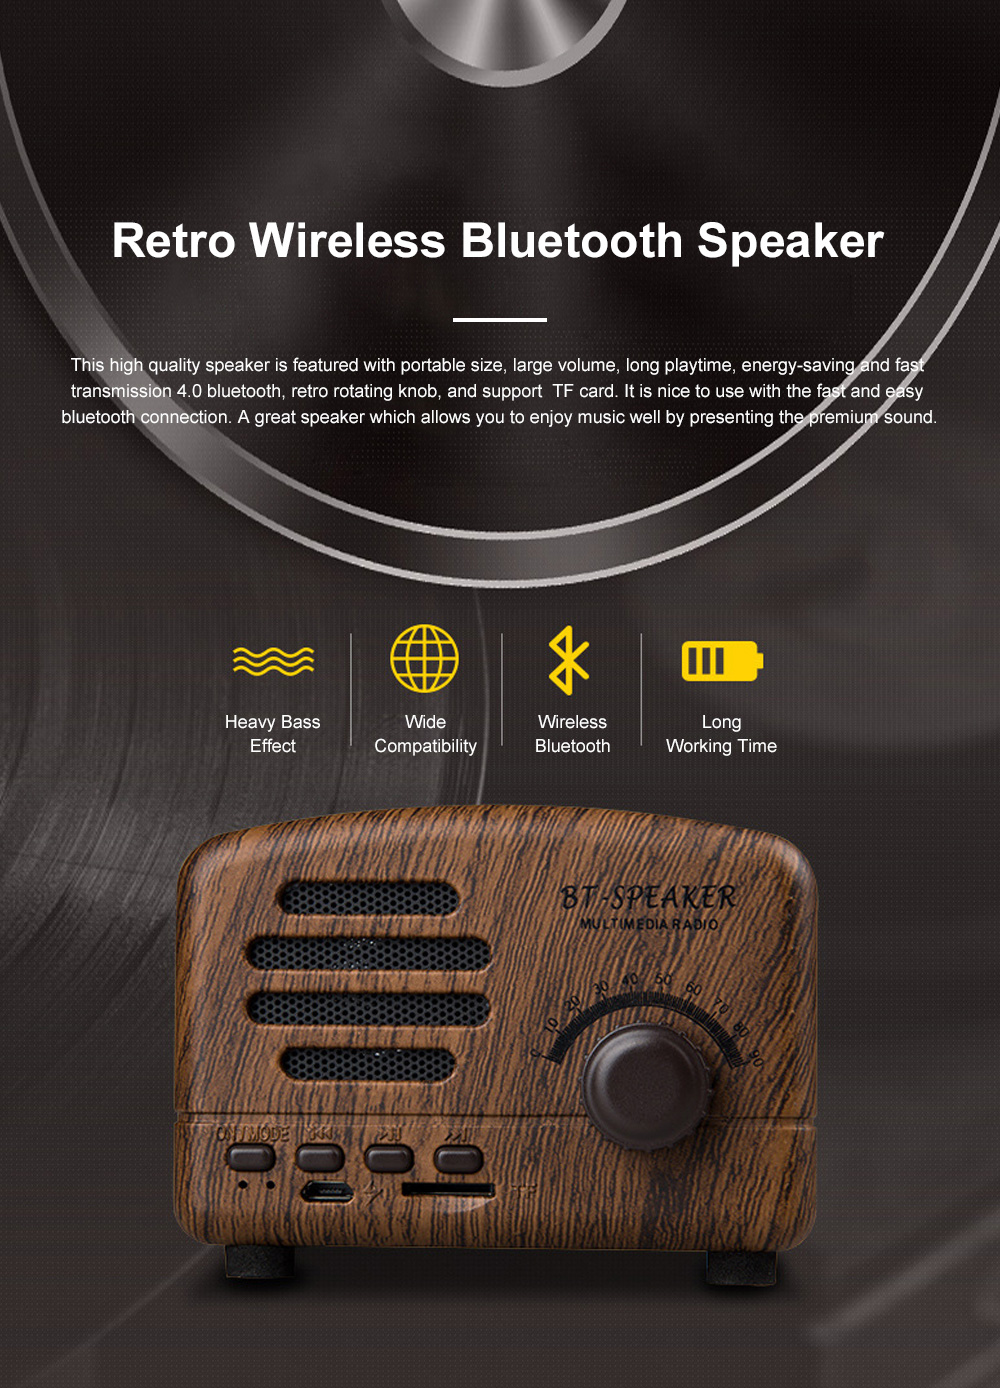 Retro BT-Speaker Multimedia Radio Portable Wireless Bluetooth Speaker Subwoofer with TF Card Slot 0